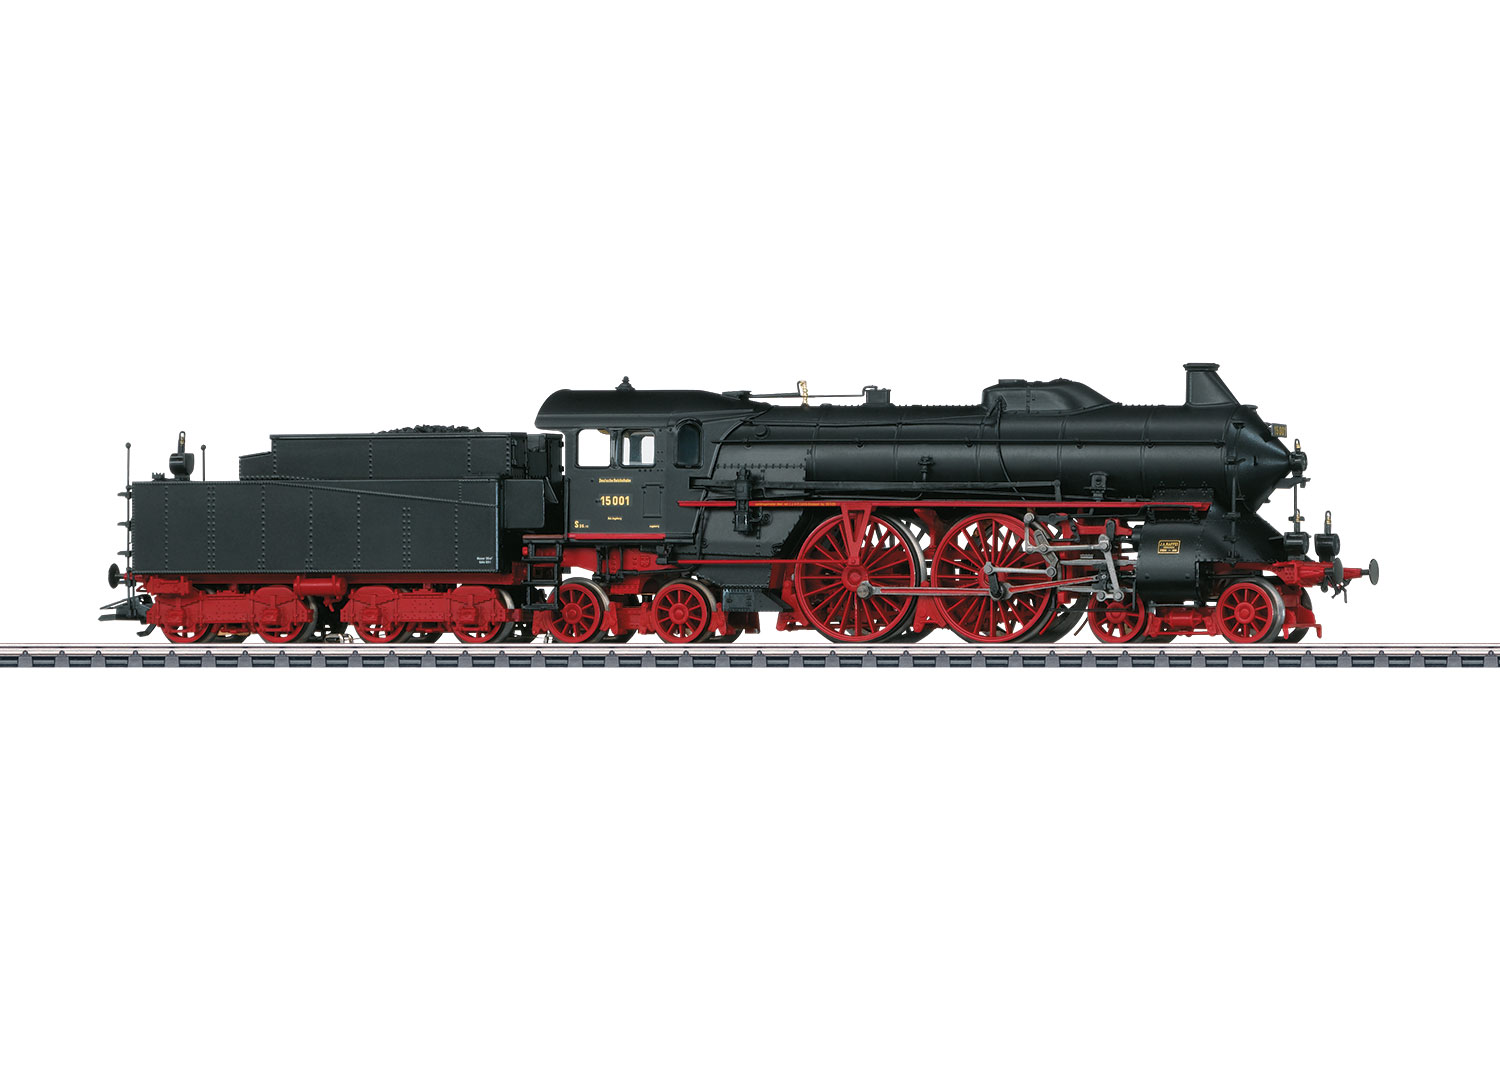 Steam Express Locomotive with a Tender